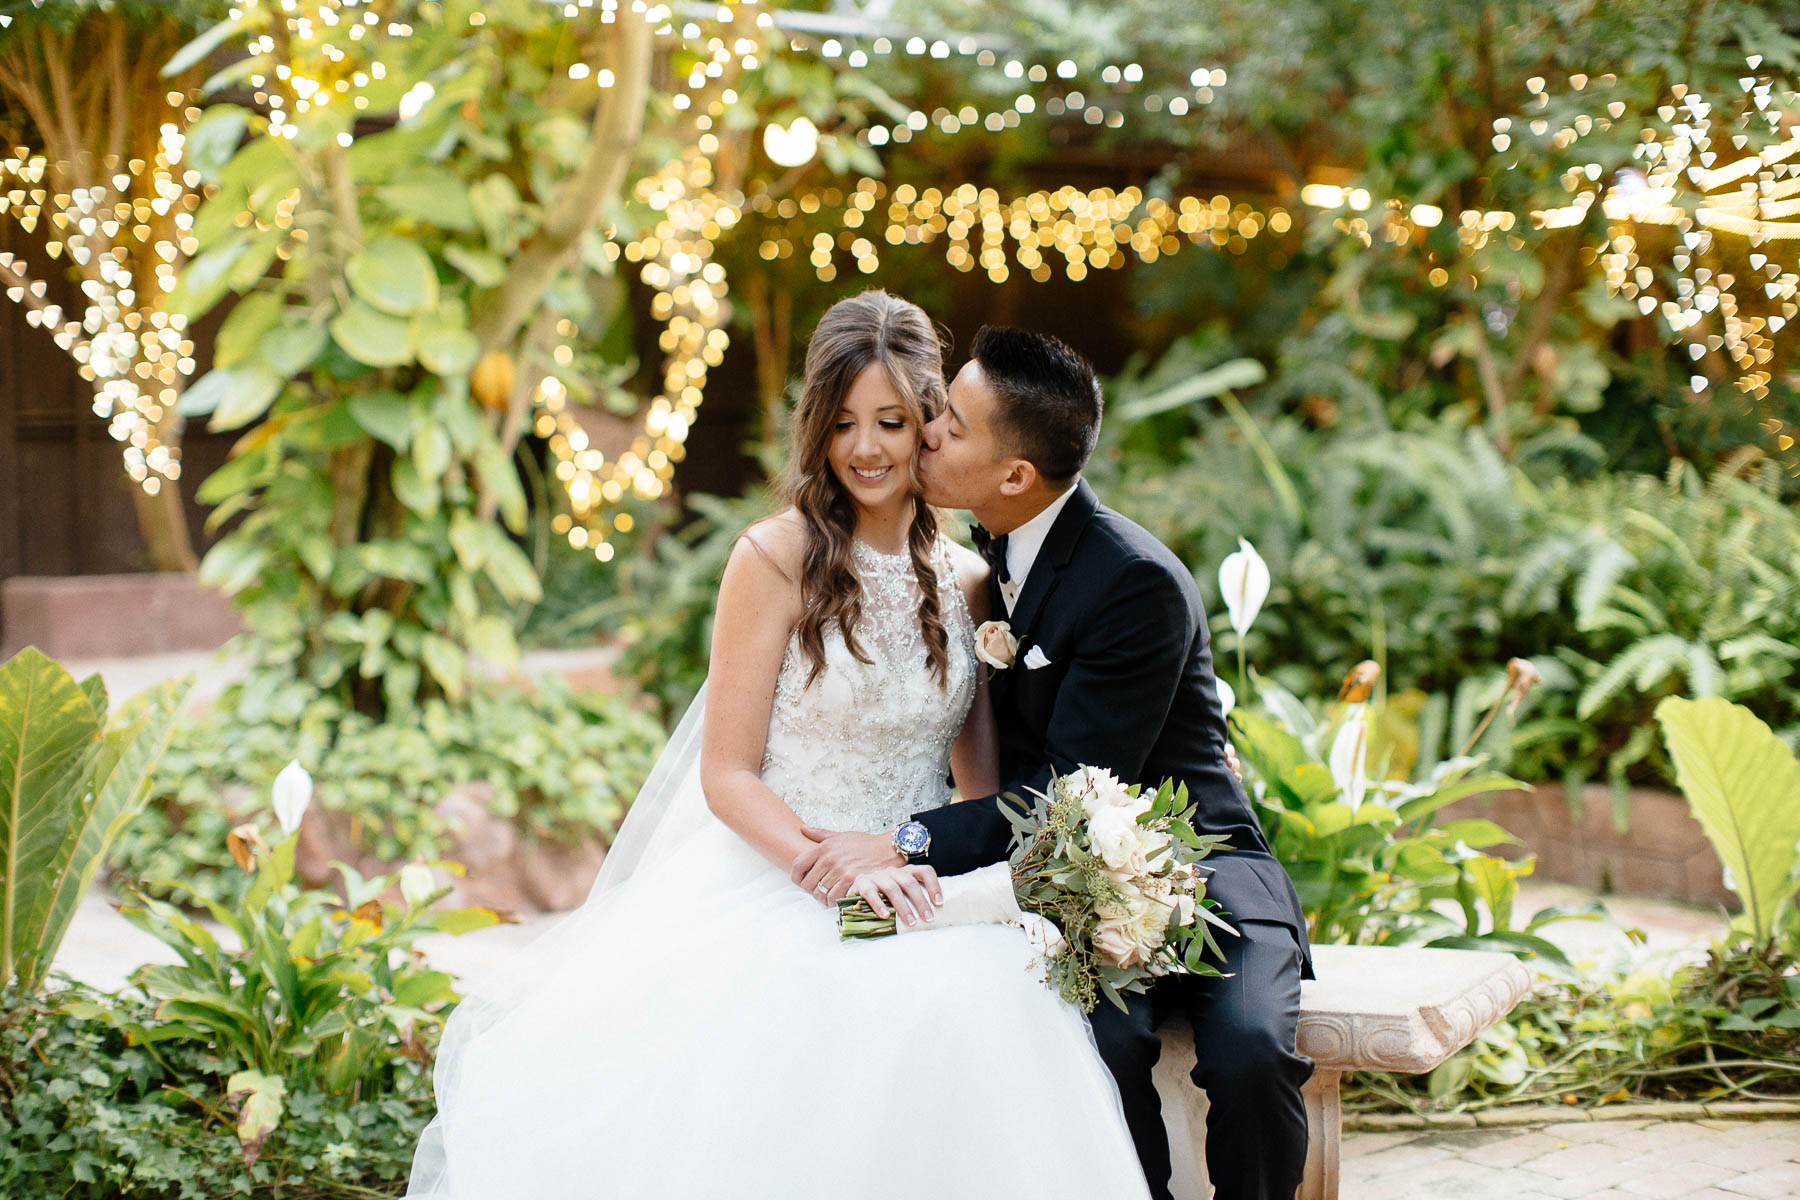 161112-Luxium-Weddings-Arizona-Jon-Madison-Boojum-Tree-First-Look-034.jpg